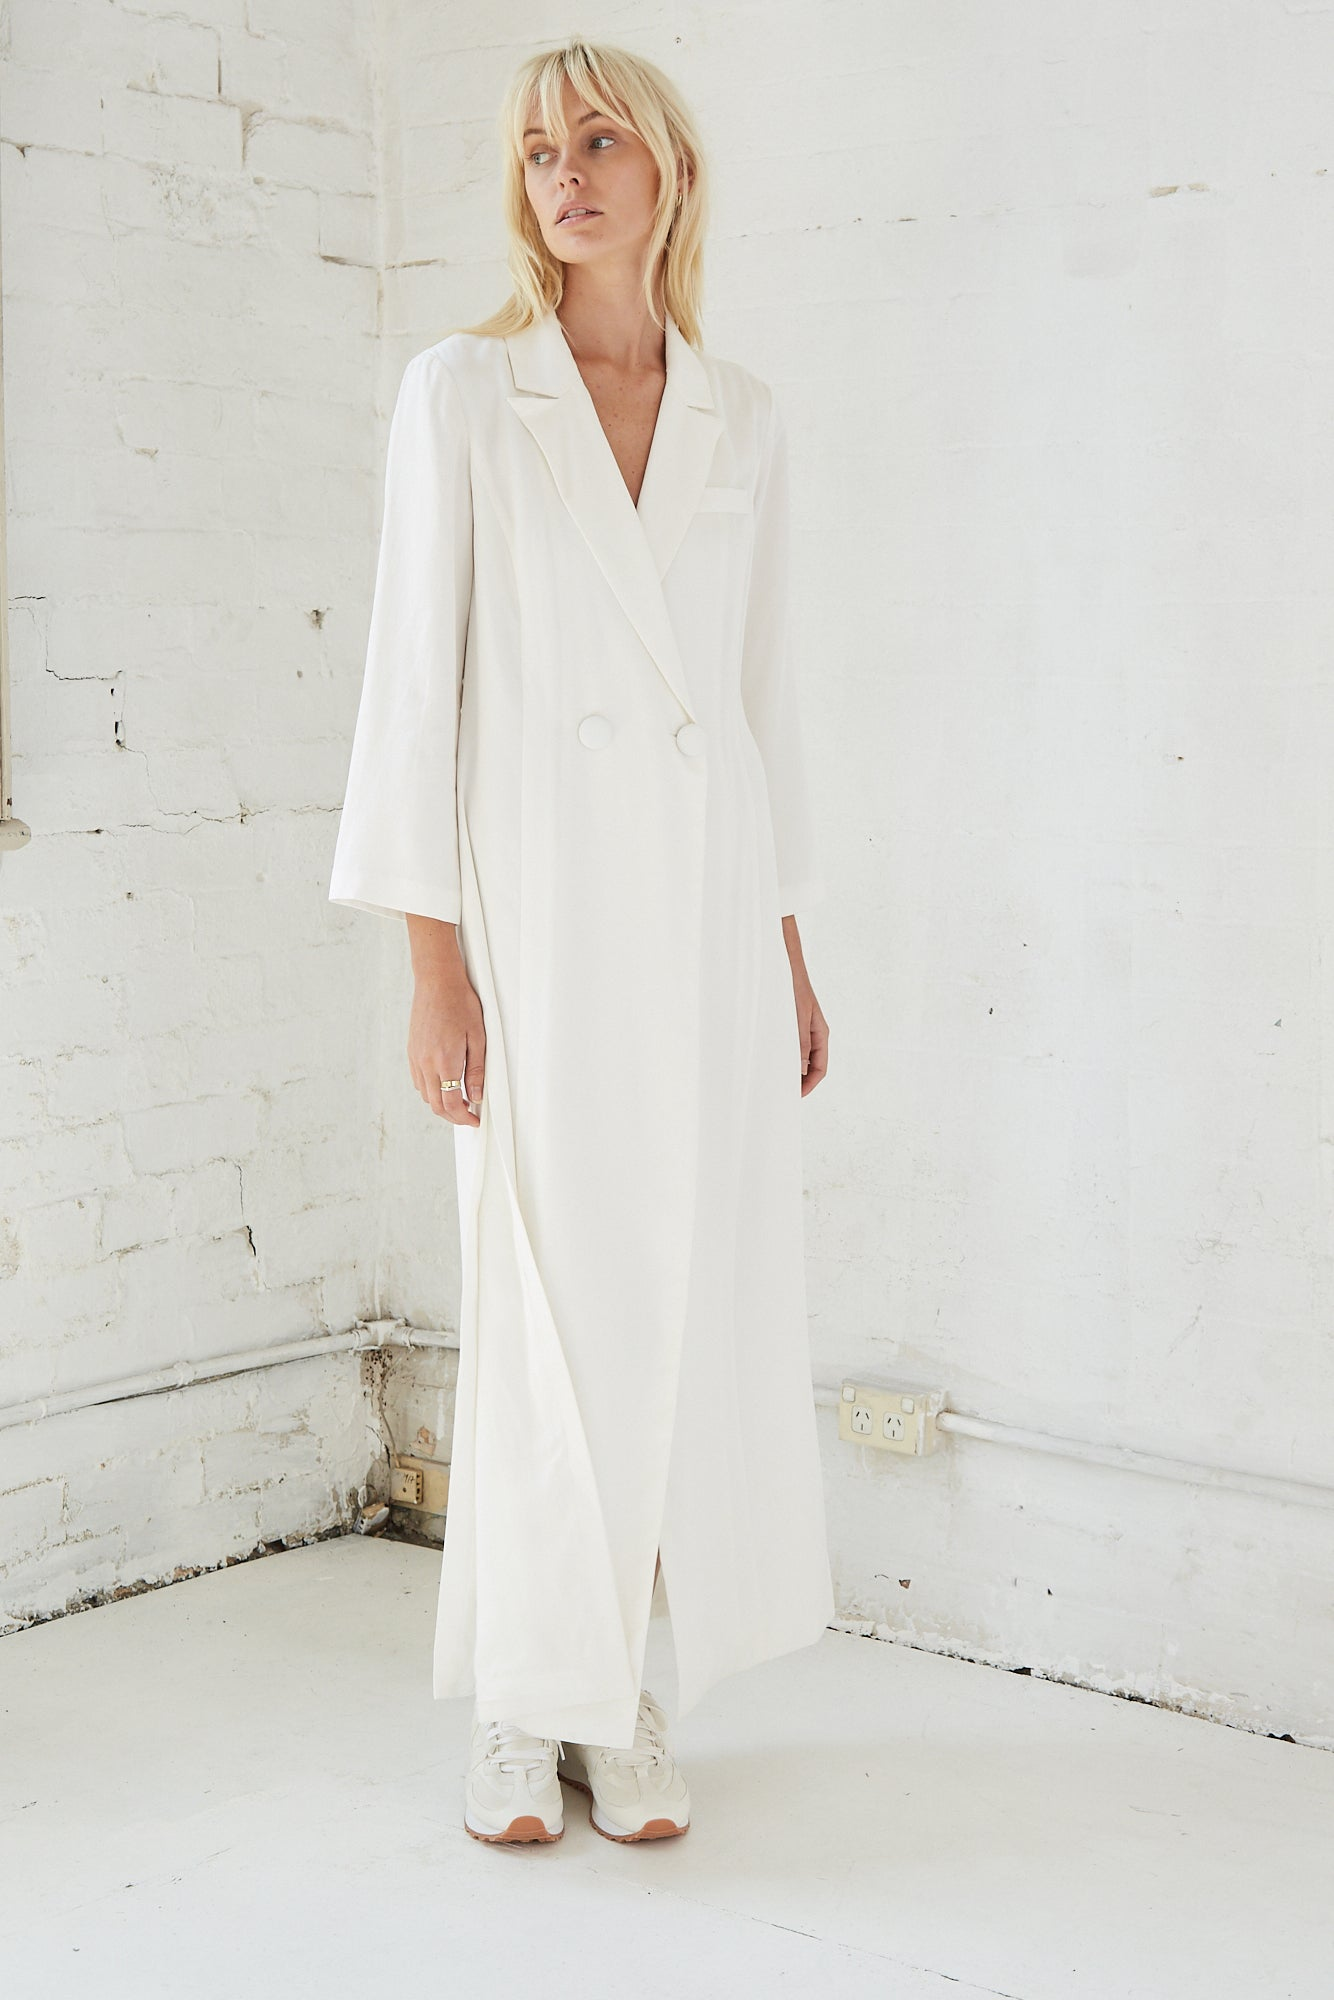 MOVE ON MAXI BLAZER |OFF WHITE